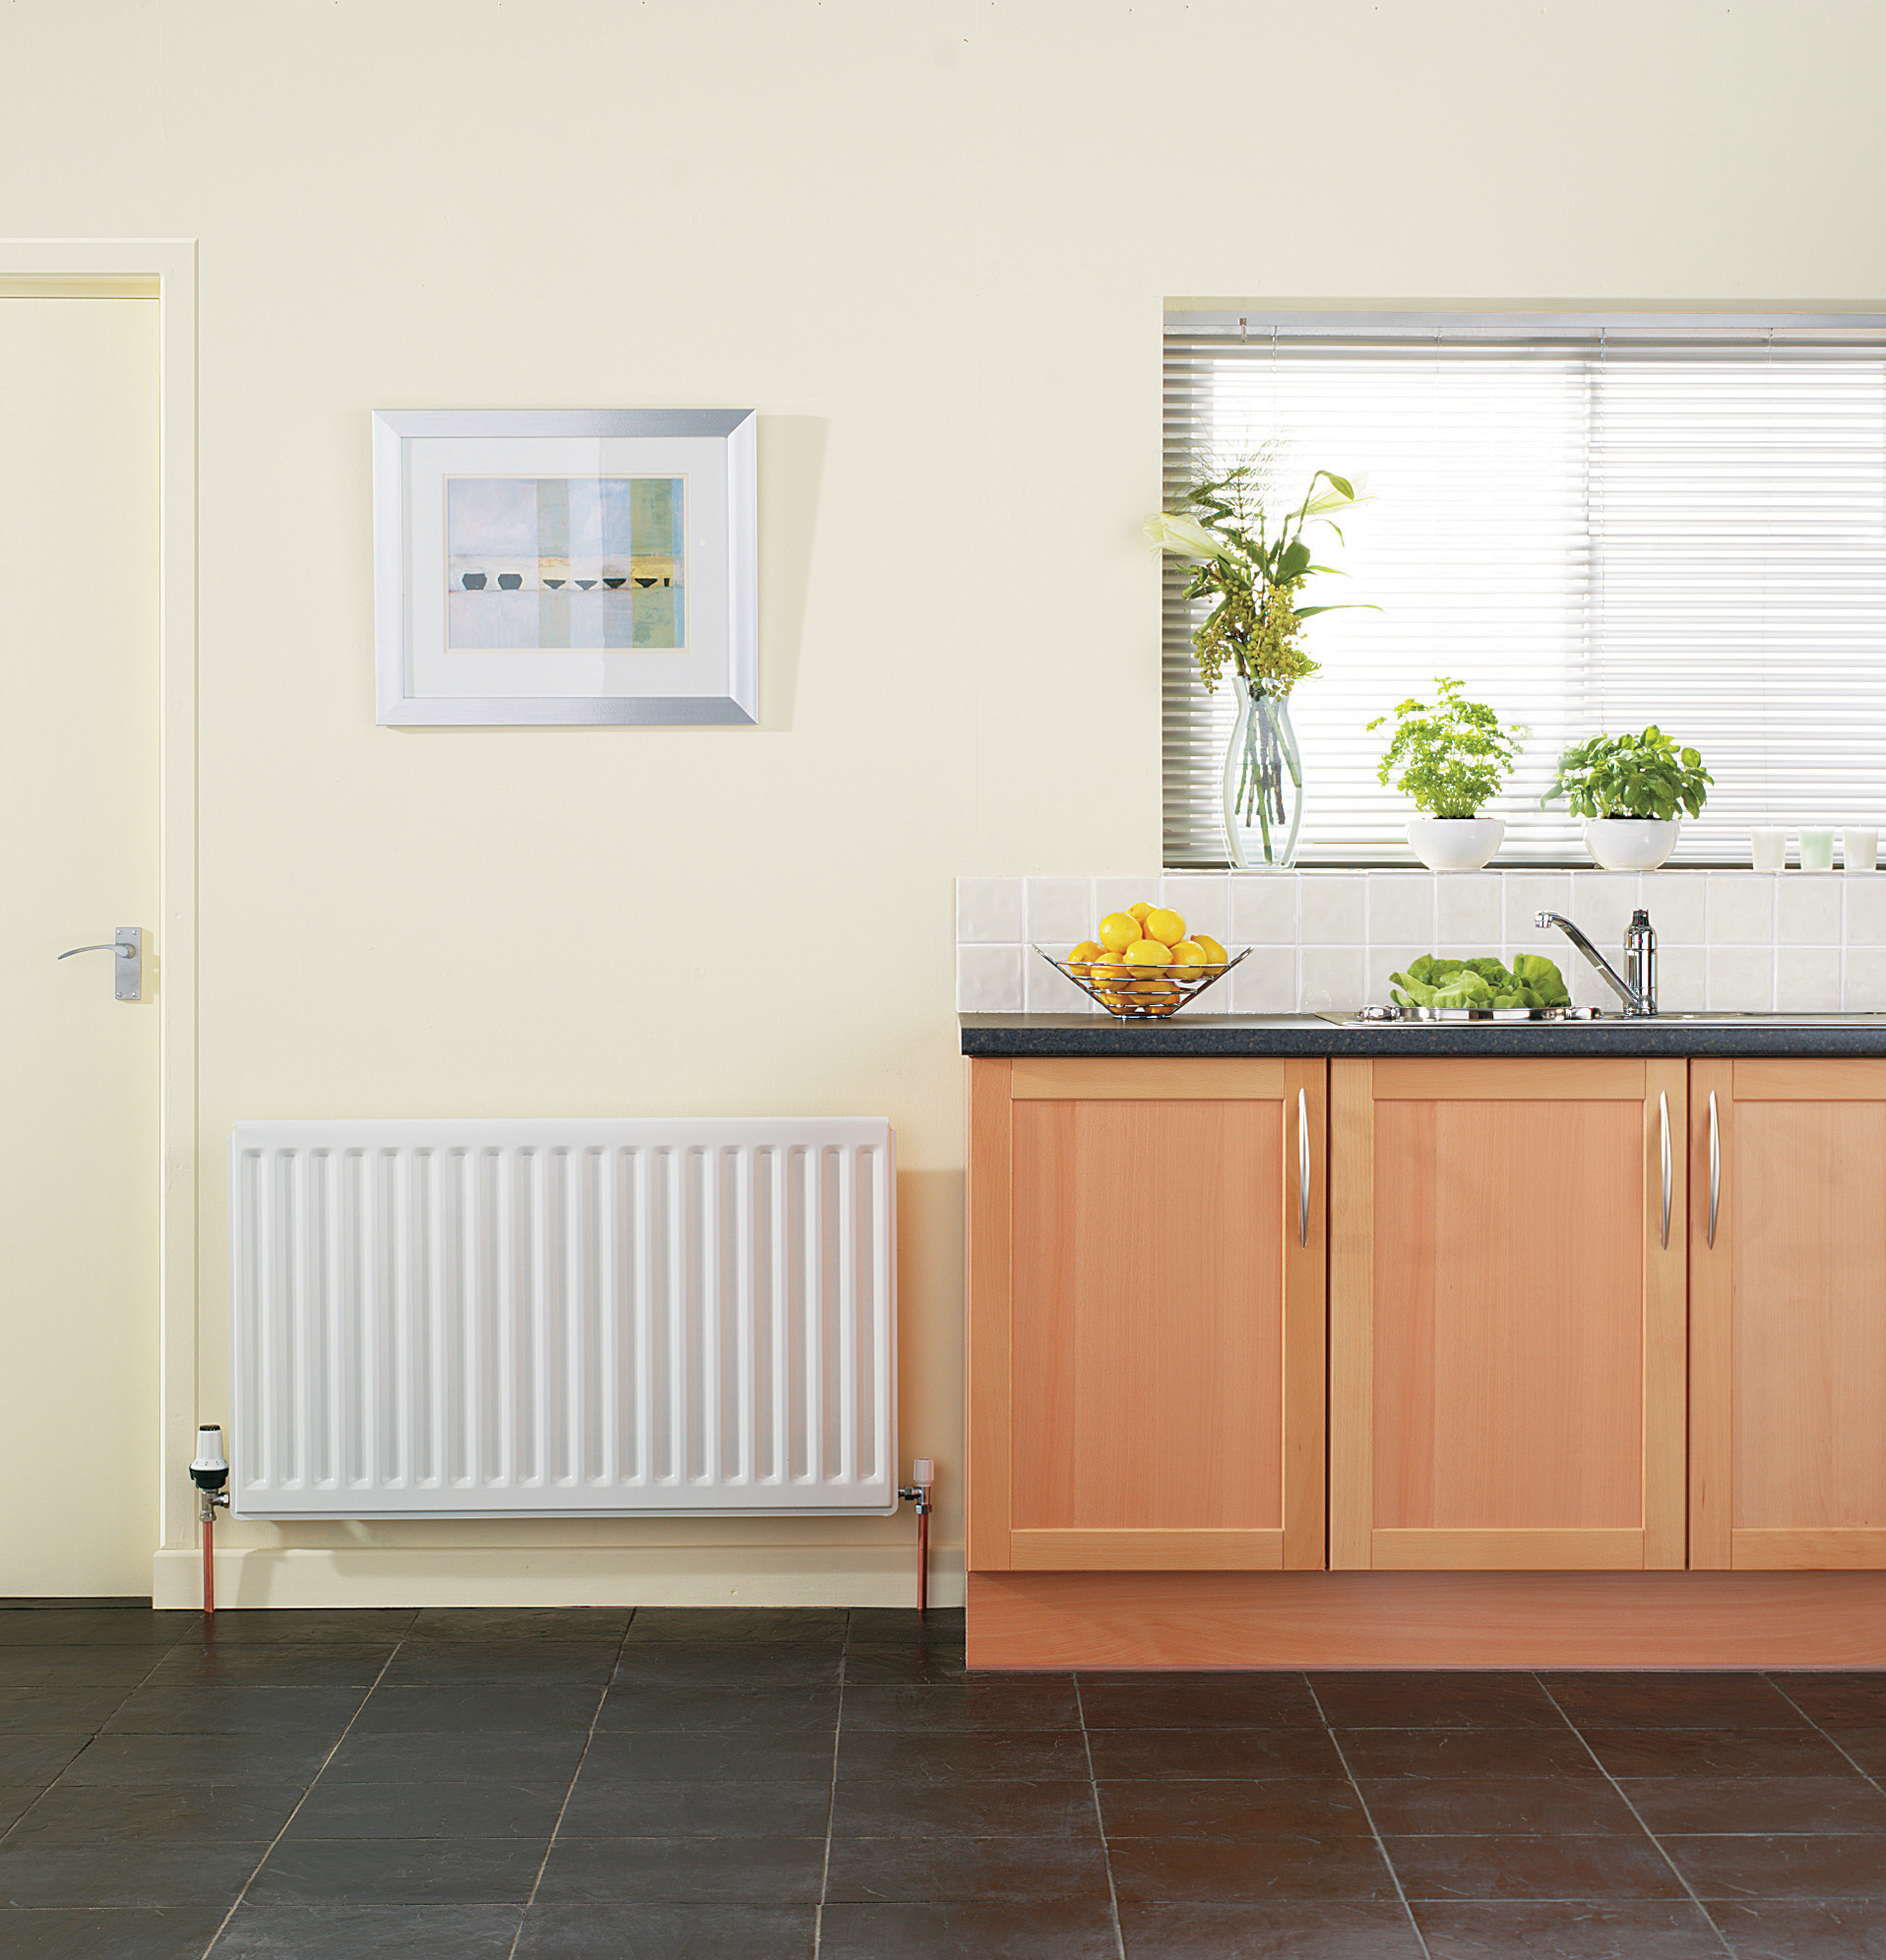 Kitchen Radiator Quiet One Kickspace Heaters Ks2000 Smiths Environmental Products